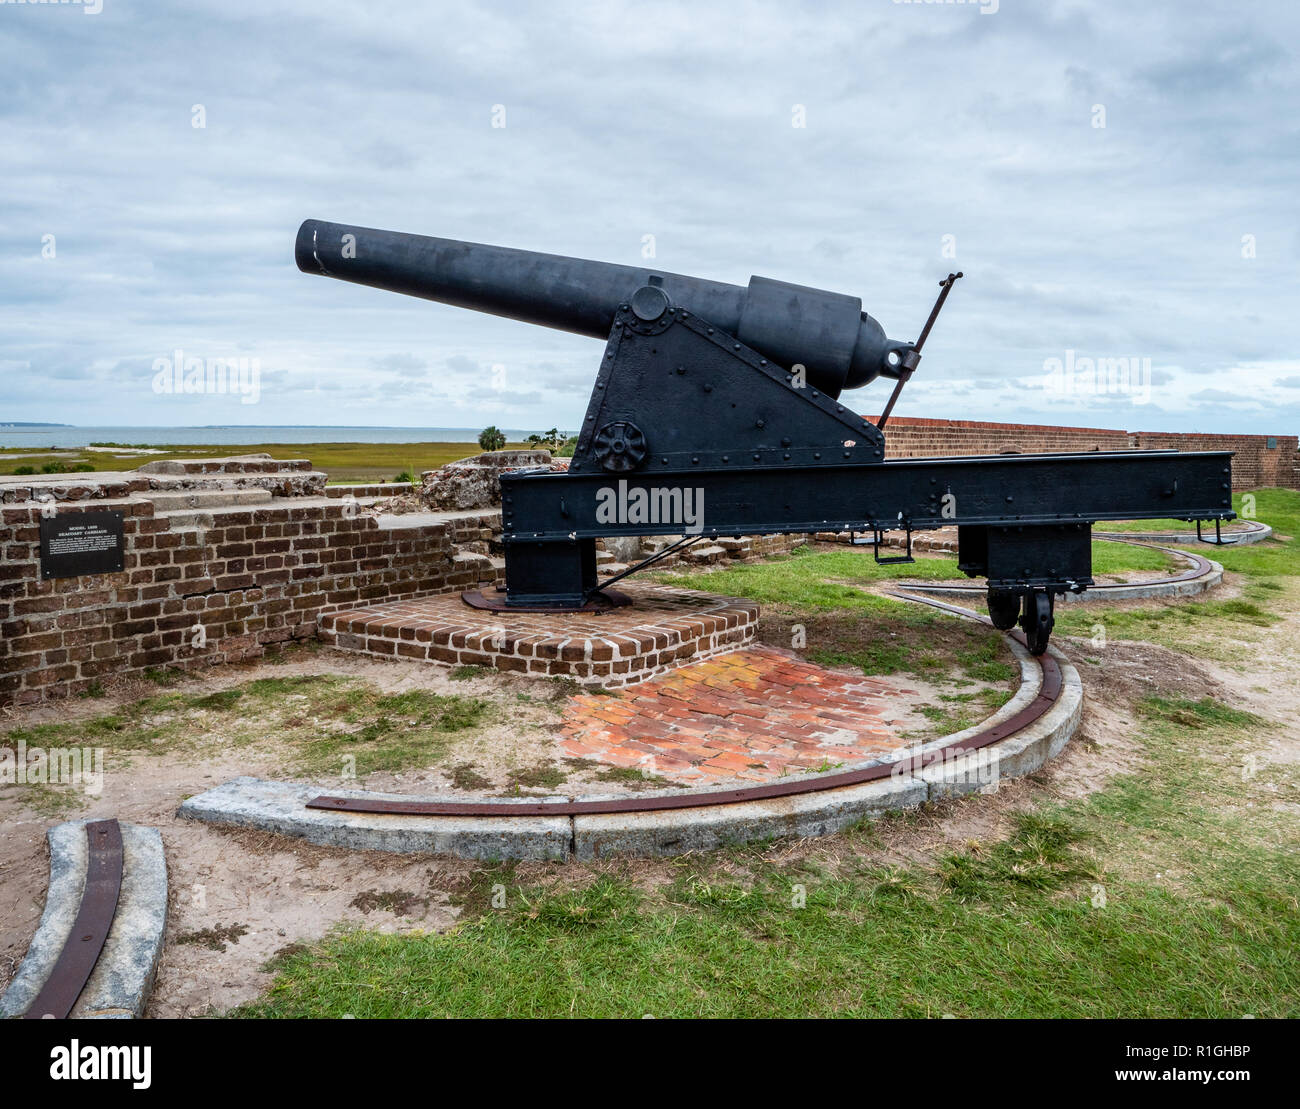 Heavyweight cannon on swivelling track at Fort Pulaski National Monument guarding the Savannah River in Georgia USA - Stock Image